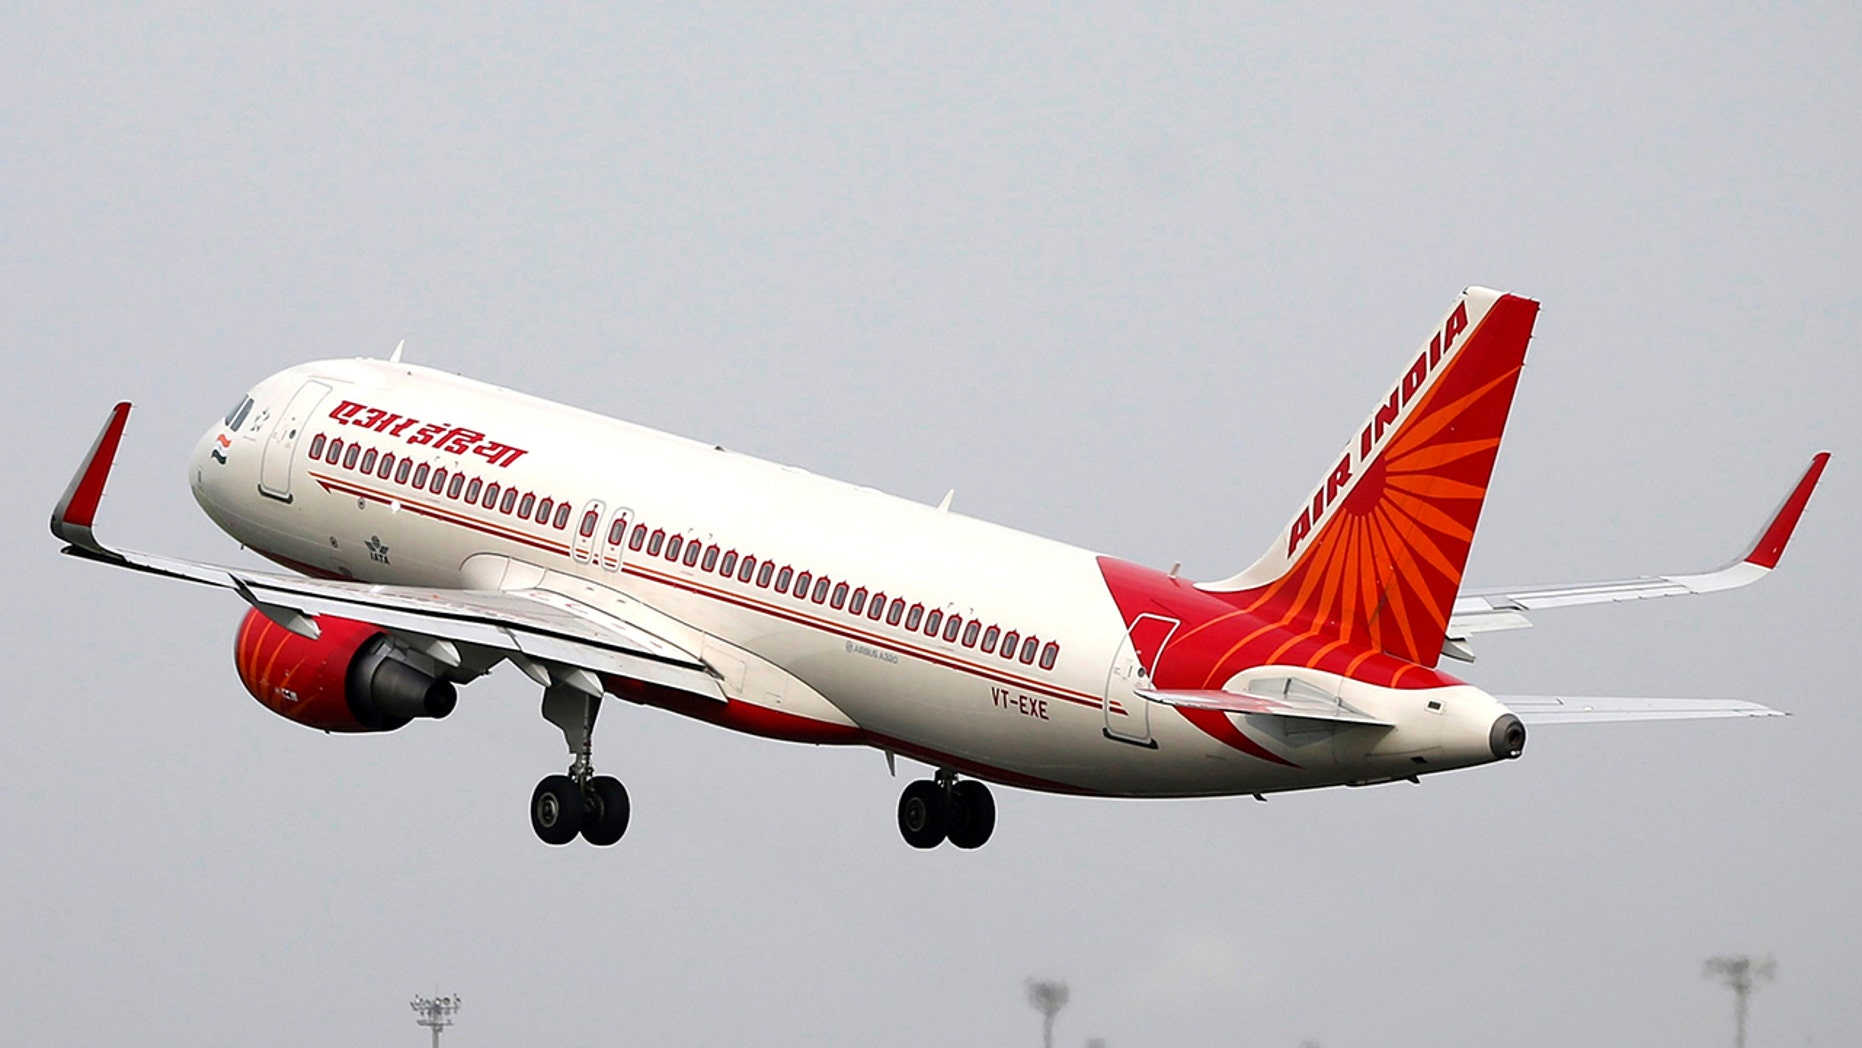 A passenger and Air India staff member escalated into a physical altercation at the airport on Tuesday morning.